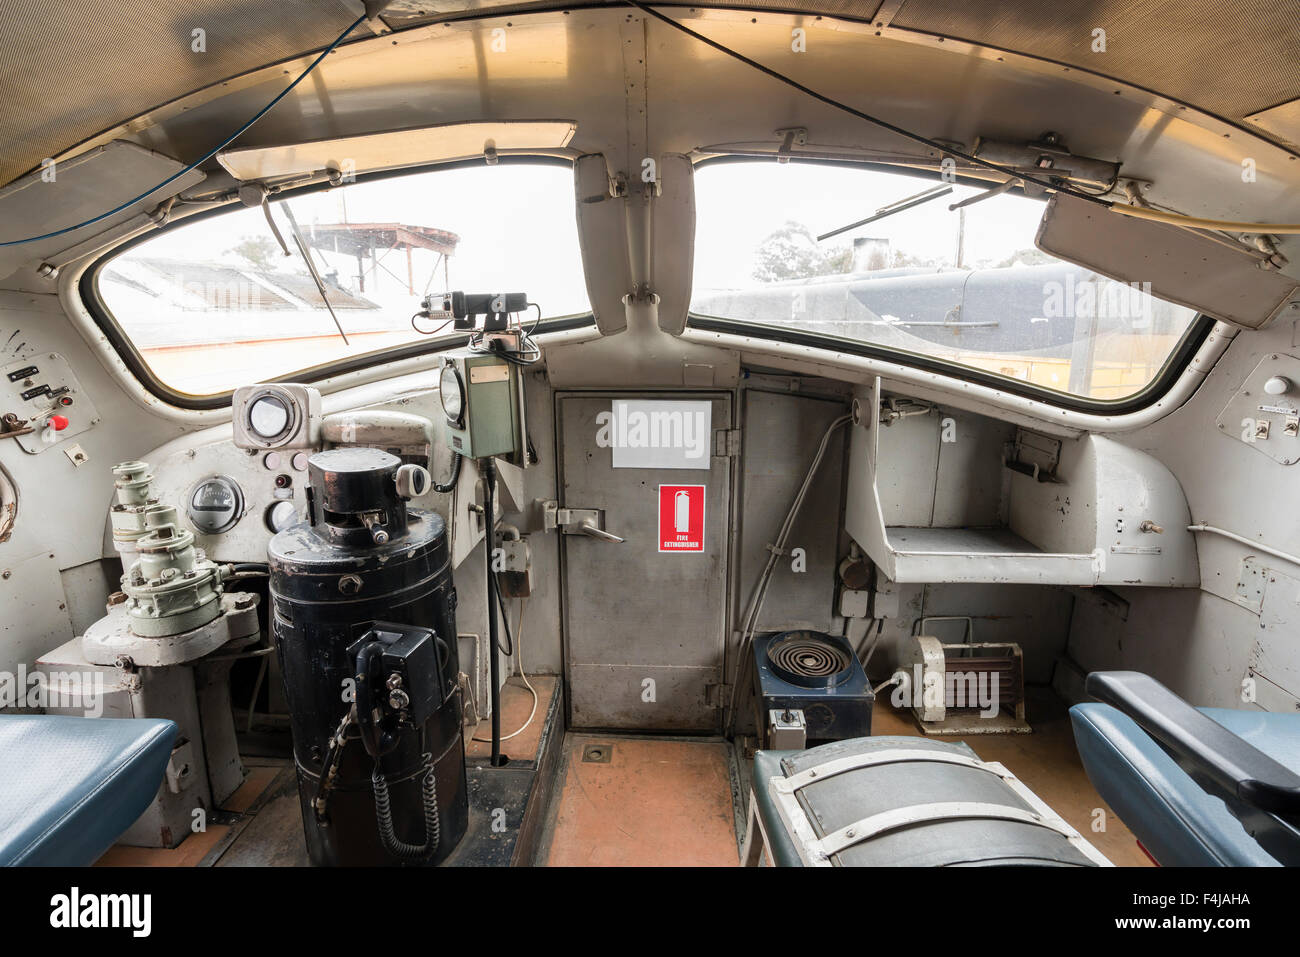 driver cabin of a diesel locomotive stock photo 88913926 alamy. Black Bedroom Furniture Sets. Home Design Ideas